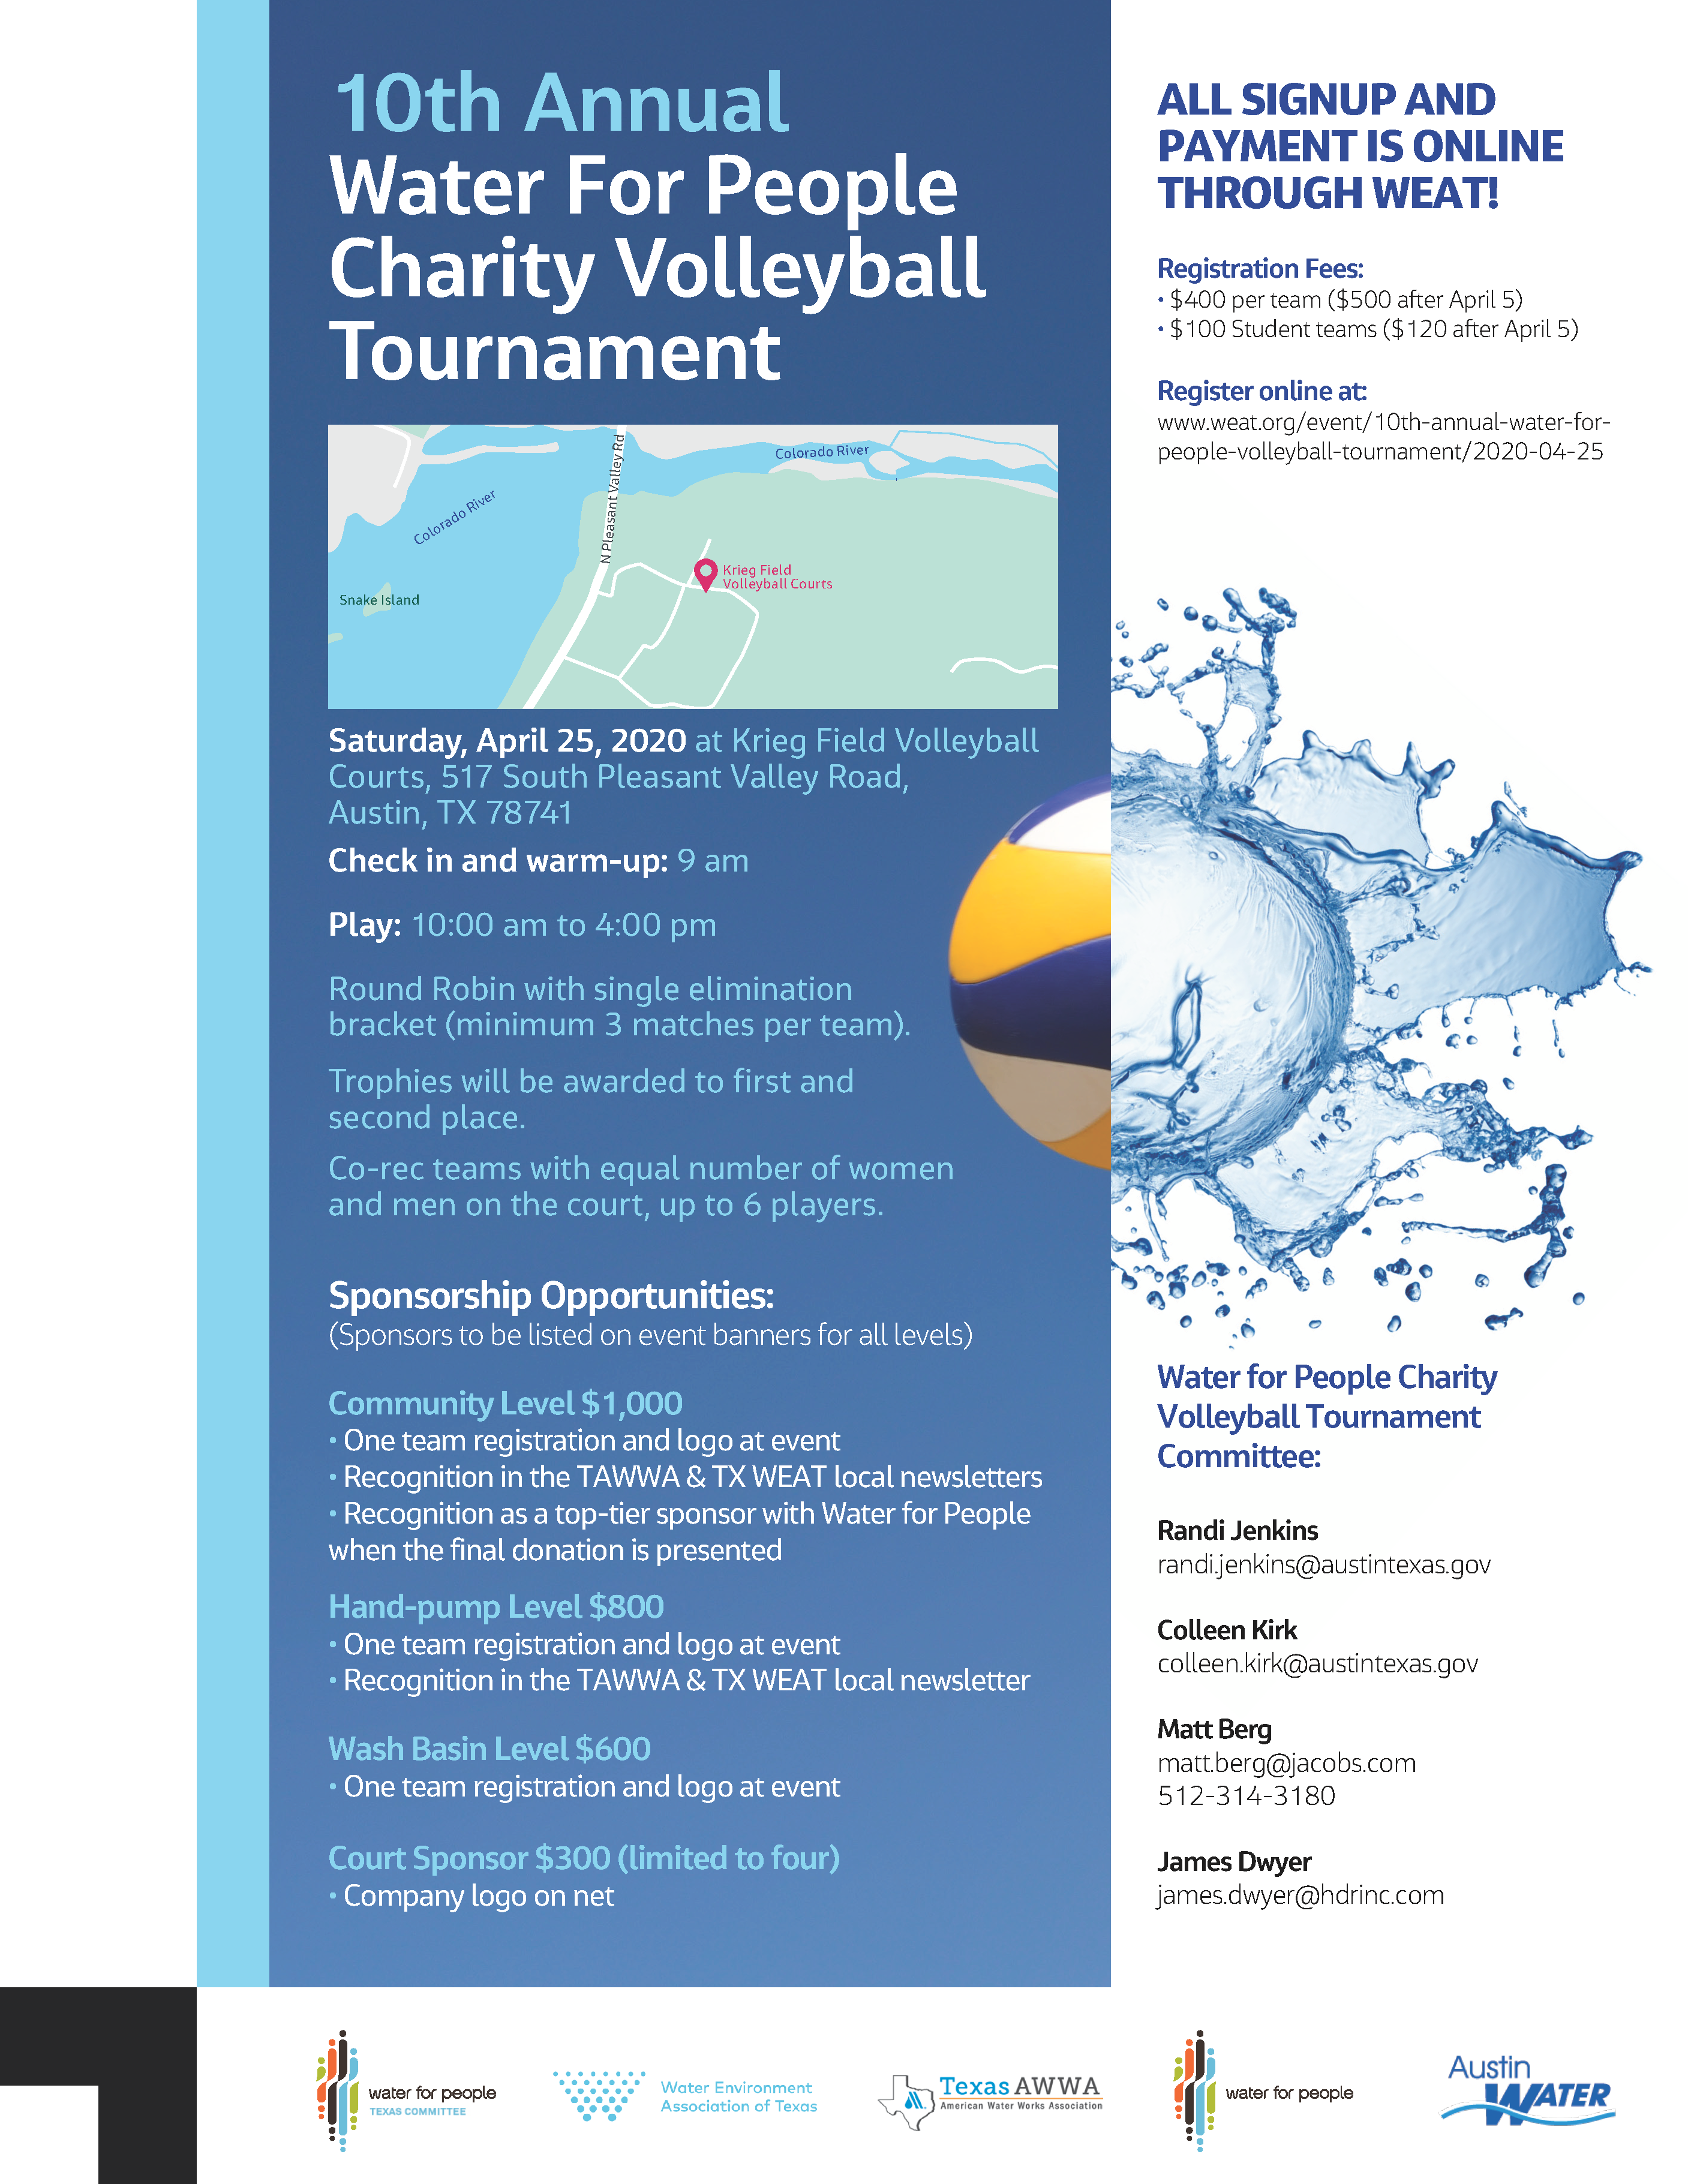 10th Annual Water For People Charity Volleyball Tournament